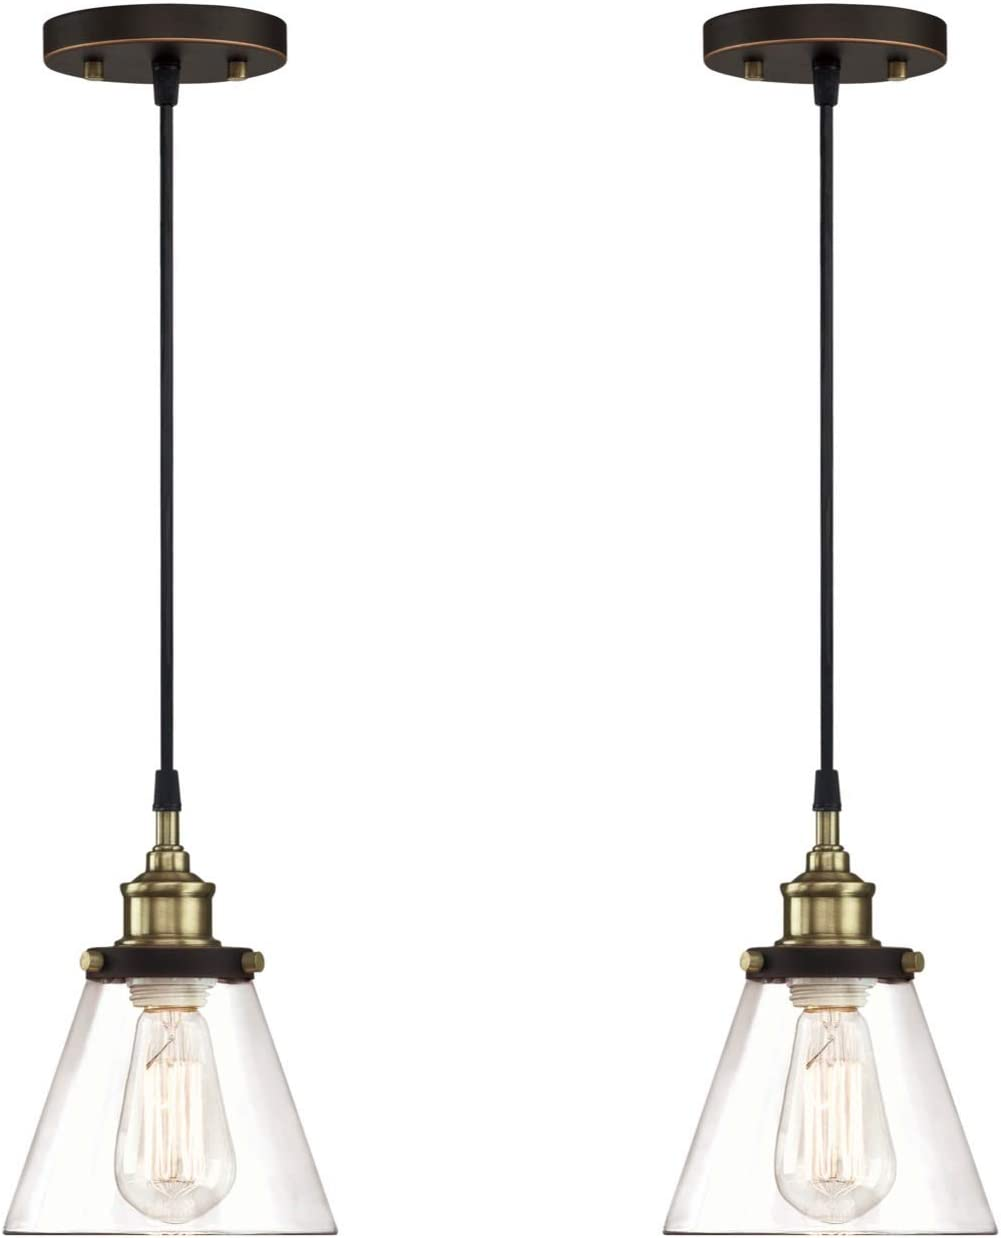 Gruenlich Pendant Lighting Fixture for Kitchen and Dining Room, Hanging Lighting Fixture, E26 Medium Base, Metal Construction with Clear Glass, Bulb not Included, 2-Pack